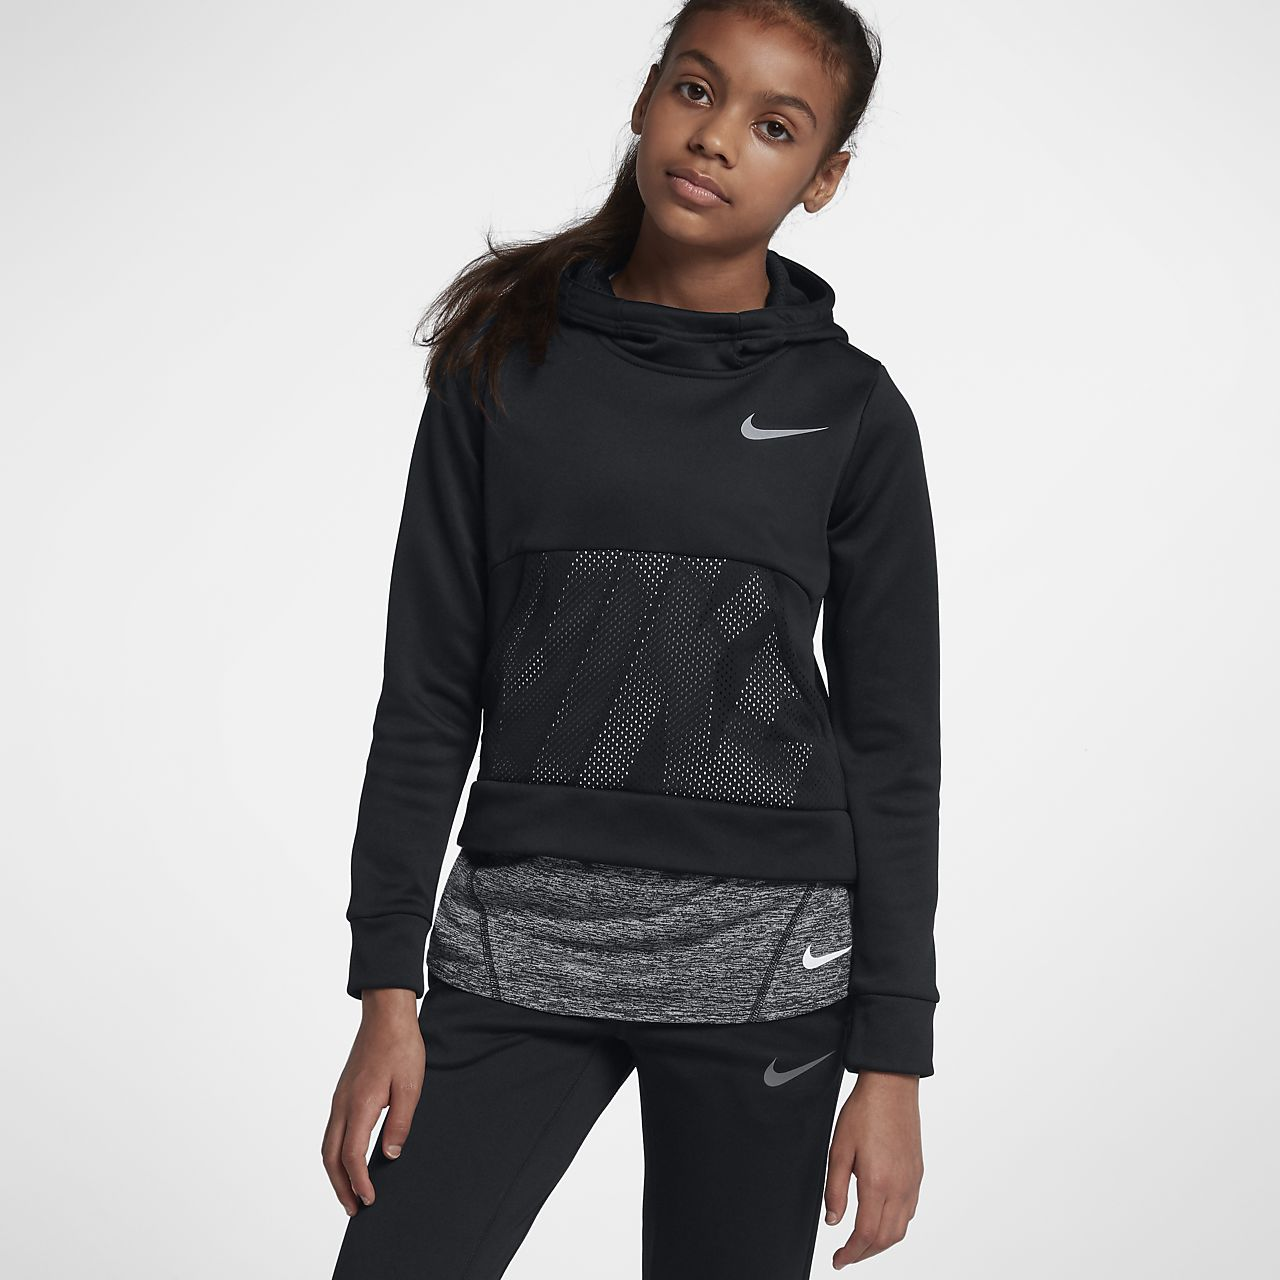 91e3b905c5b09 ... Nike Dri-FIT Therma Big Kids' (Girls') Training Pullover Hoodie